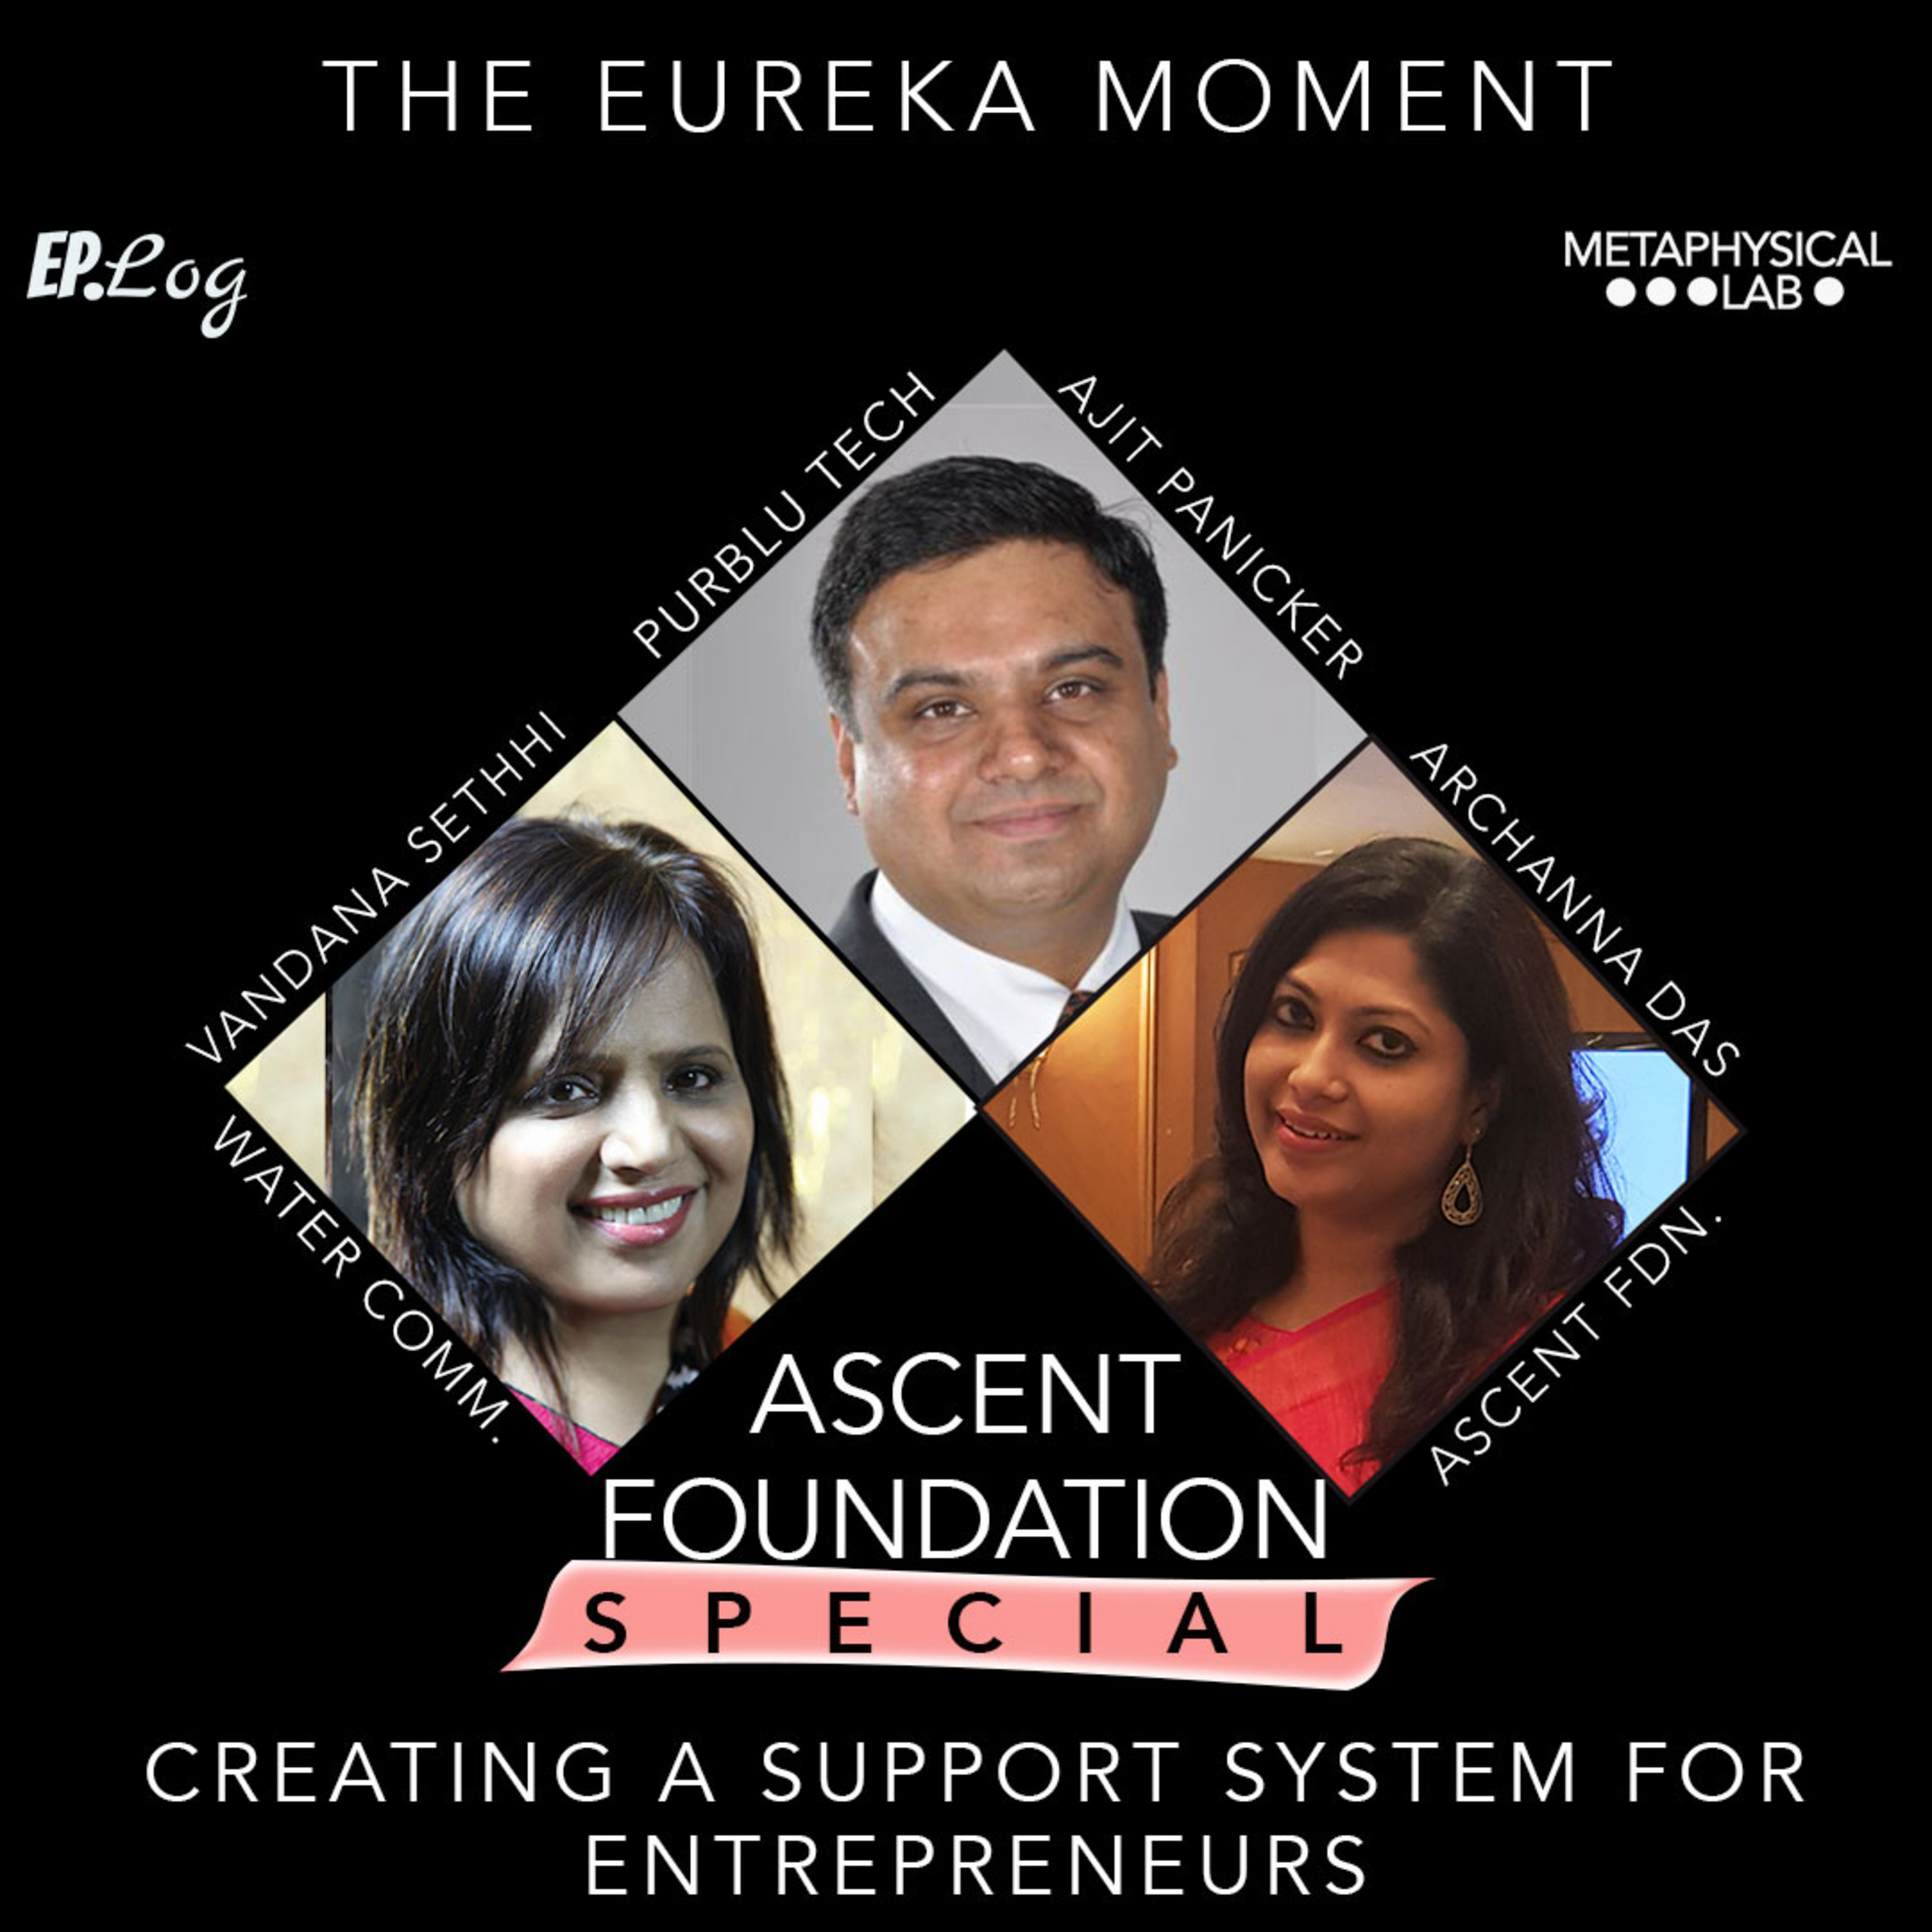 Ep.19 ASCENT FOUNDATION Special - Creating A Support System For Entrepreneurs ft. Archanna Das, Ajit Panicker, Vandana Sethhi